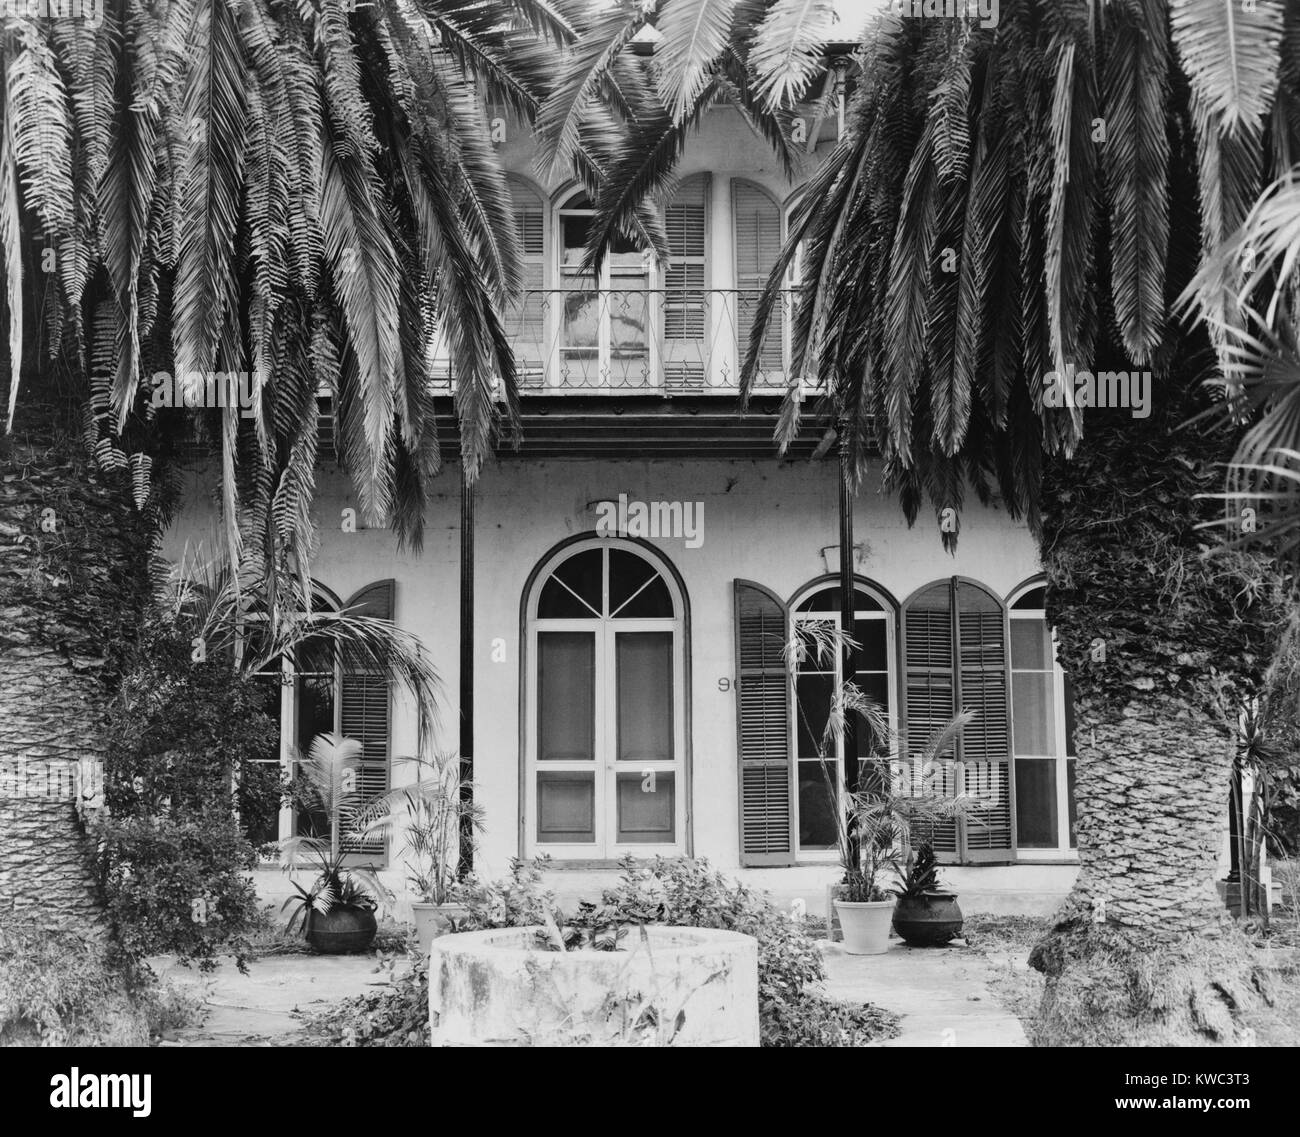 Ernest Hemingway's home in Key West, Florida, where he lived and wrote in the 1930s. It is now 'The Ernest - Stock Image